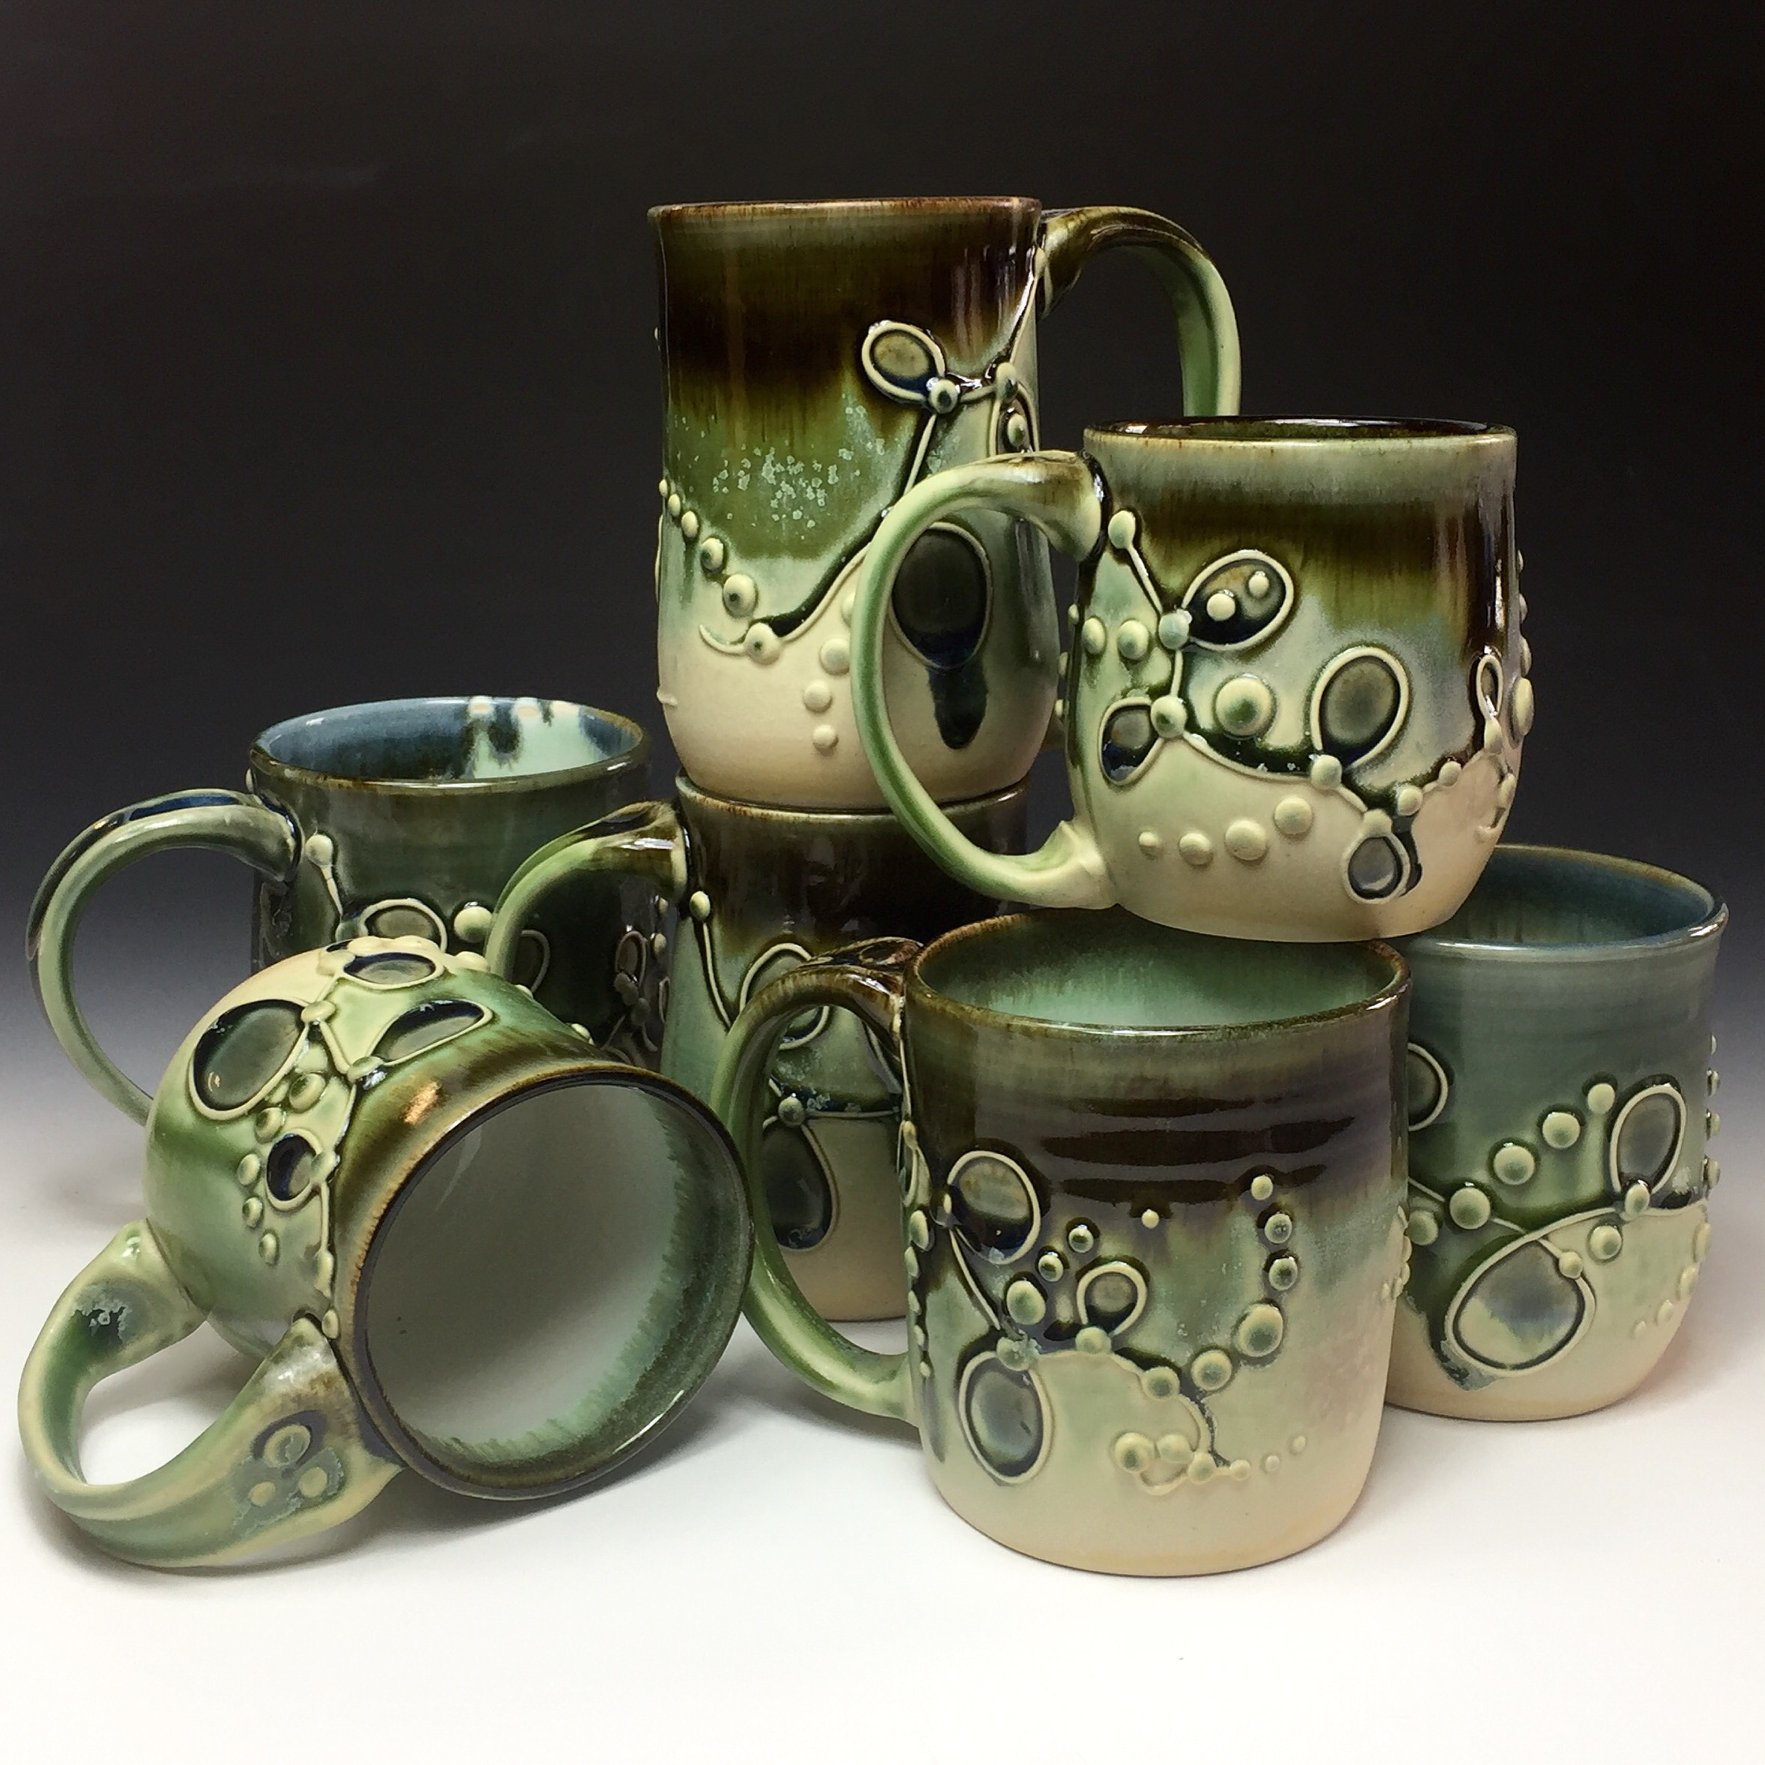 Coffee cups, made by hand.